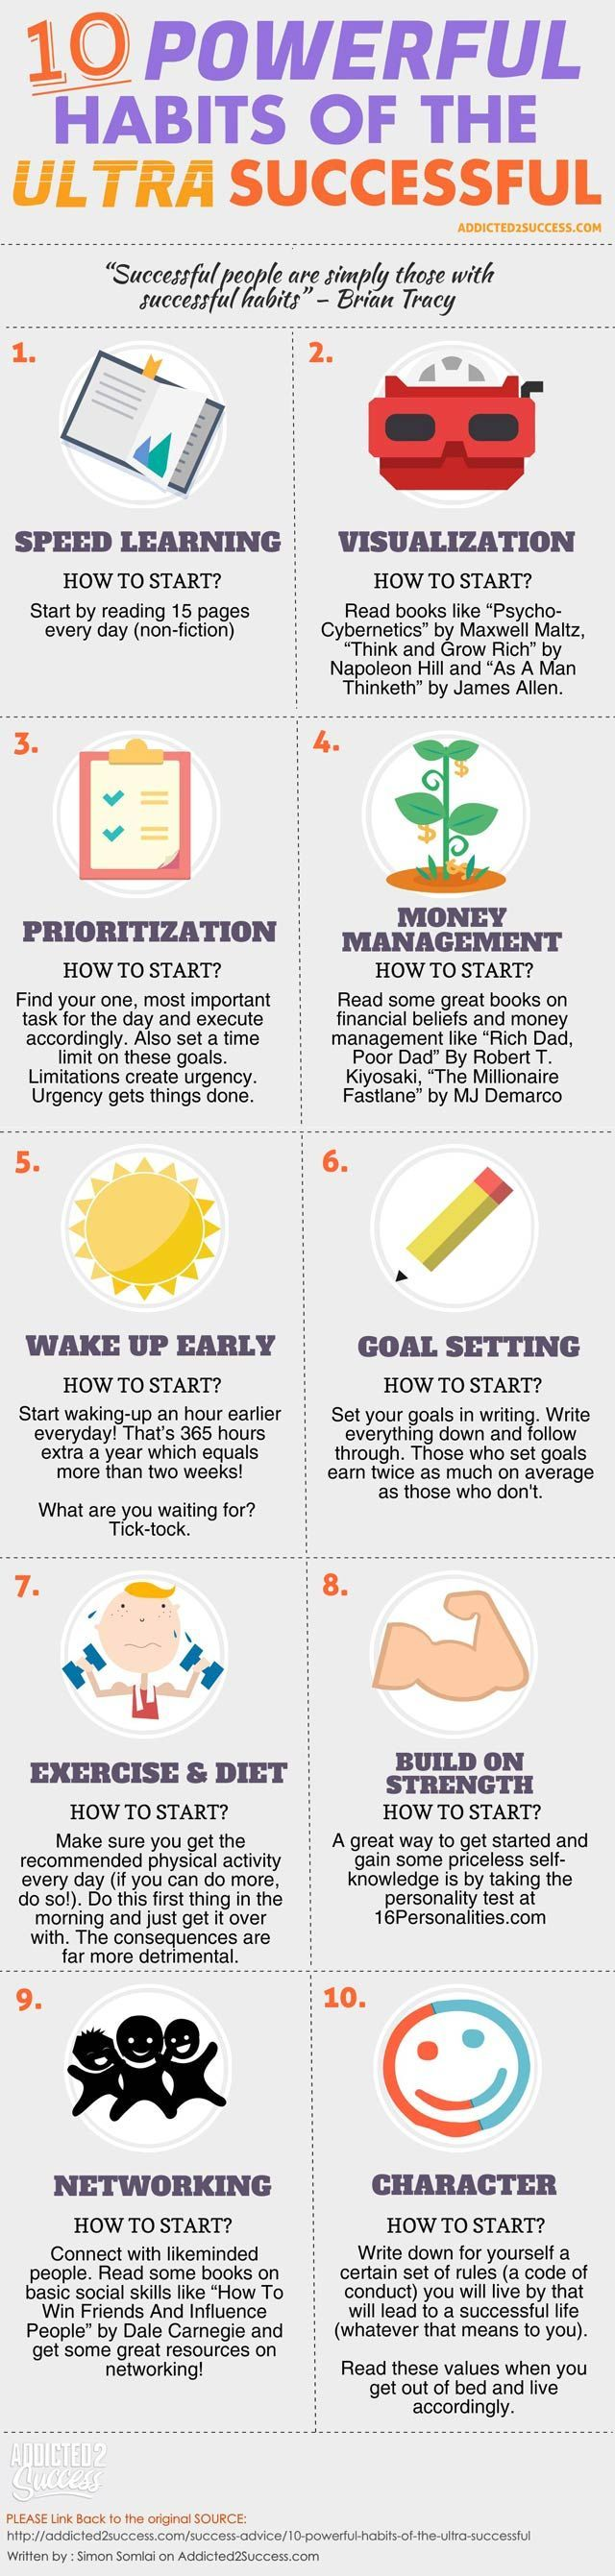 10 Powerful Habits Of The Super Successful (Infographic) | Addicted 2 Success